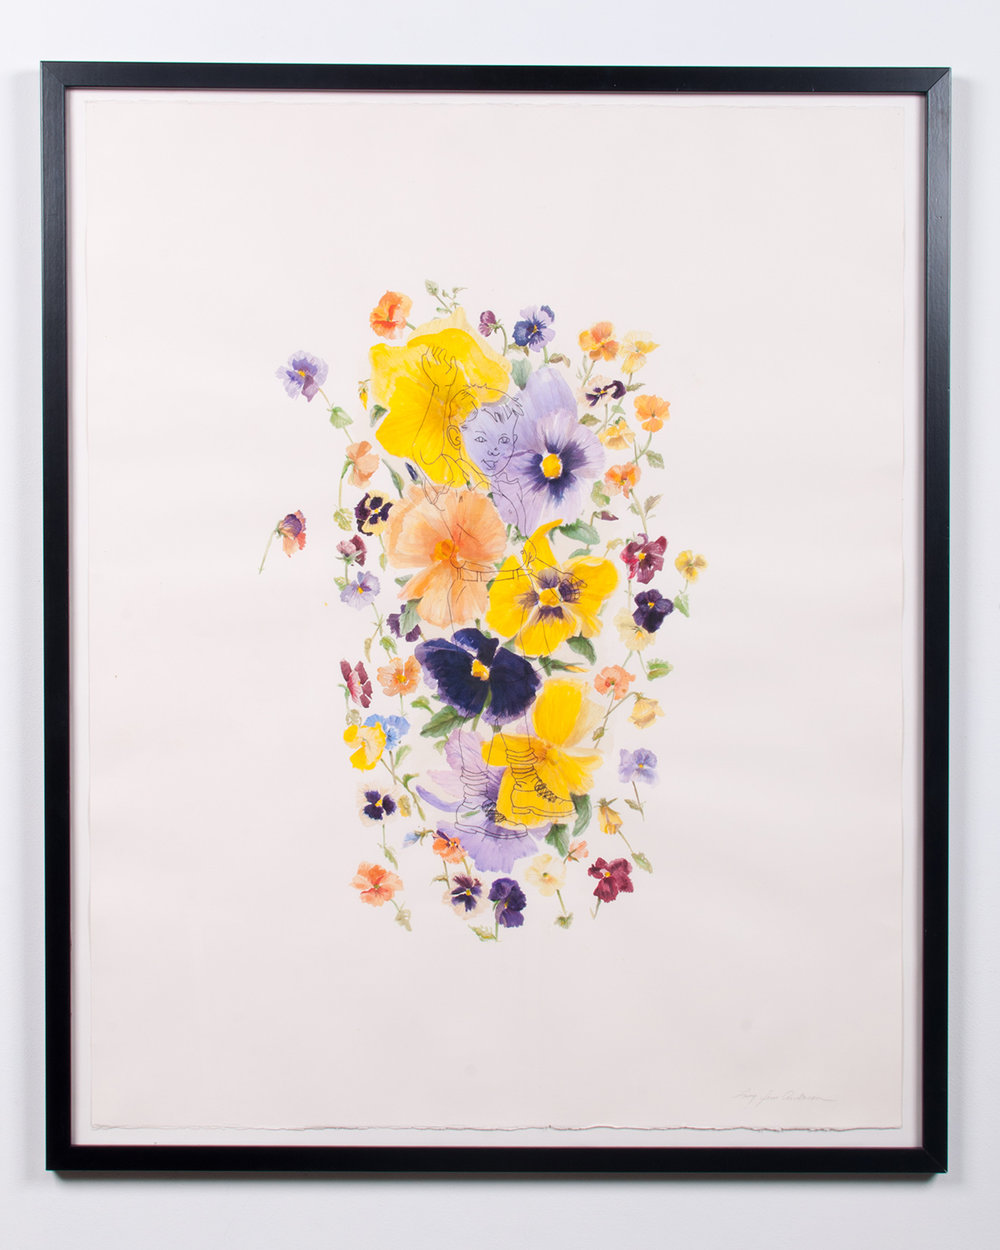 Big Pansy watercolor and colored pencil 45.75 x 37.5 LJA 162G